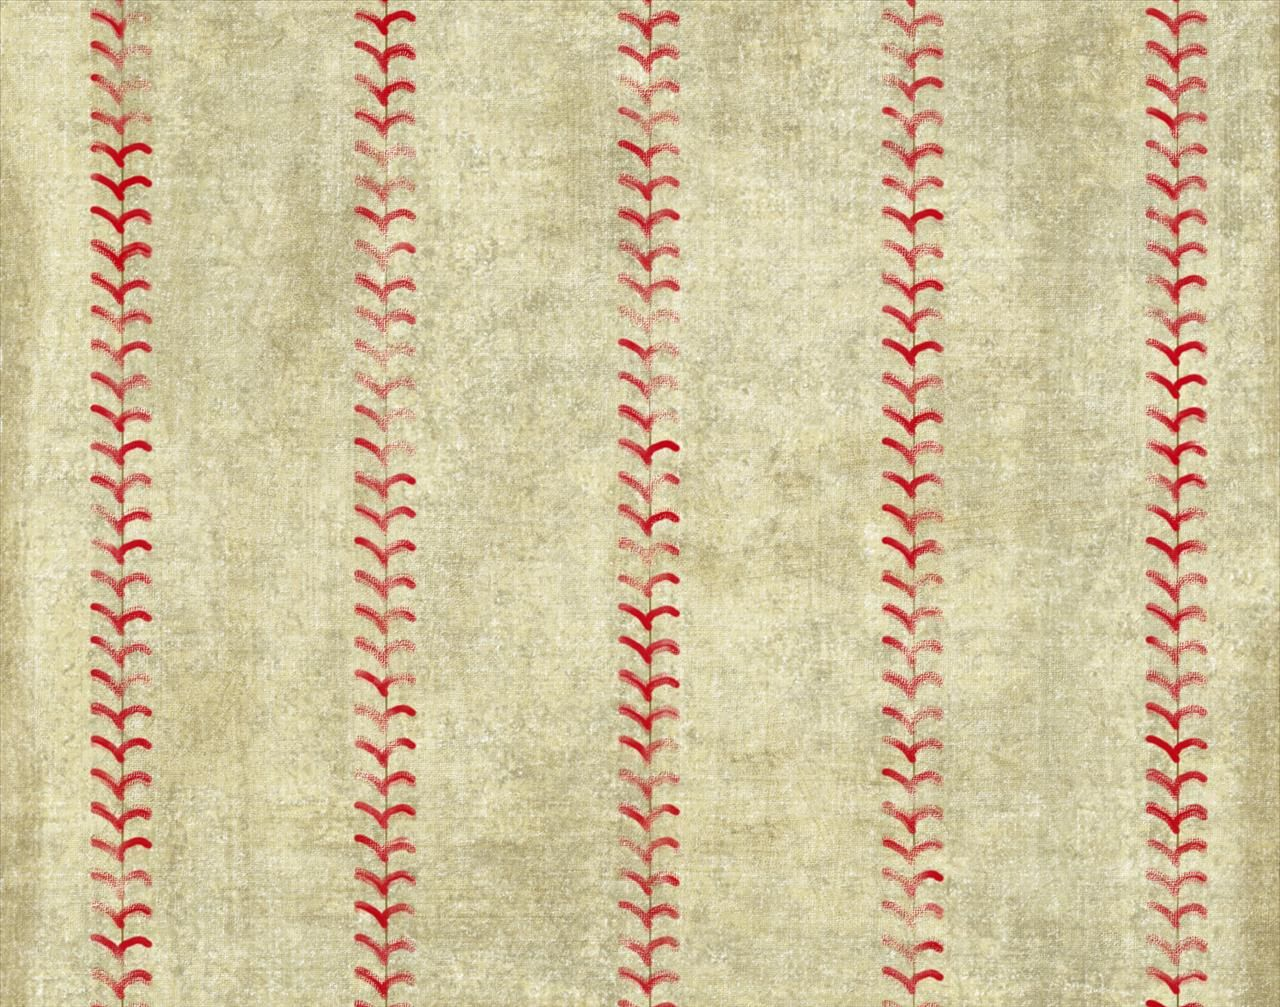 Pattern For Sport Wallpaper: Baseball Background - Grungy Athlete